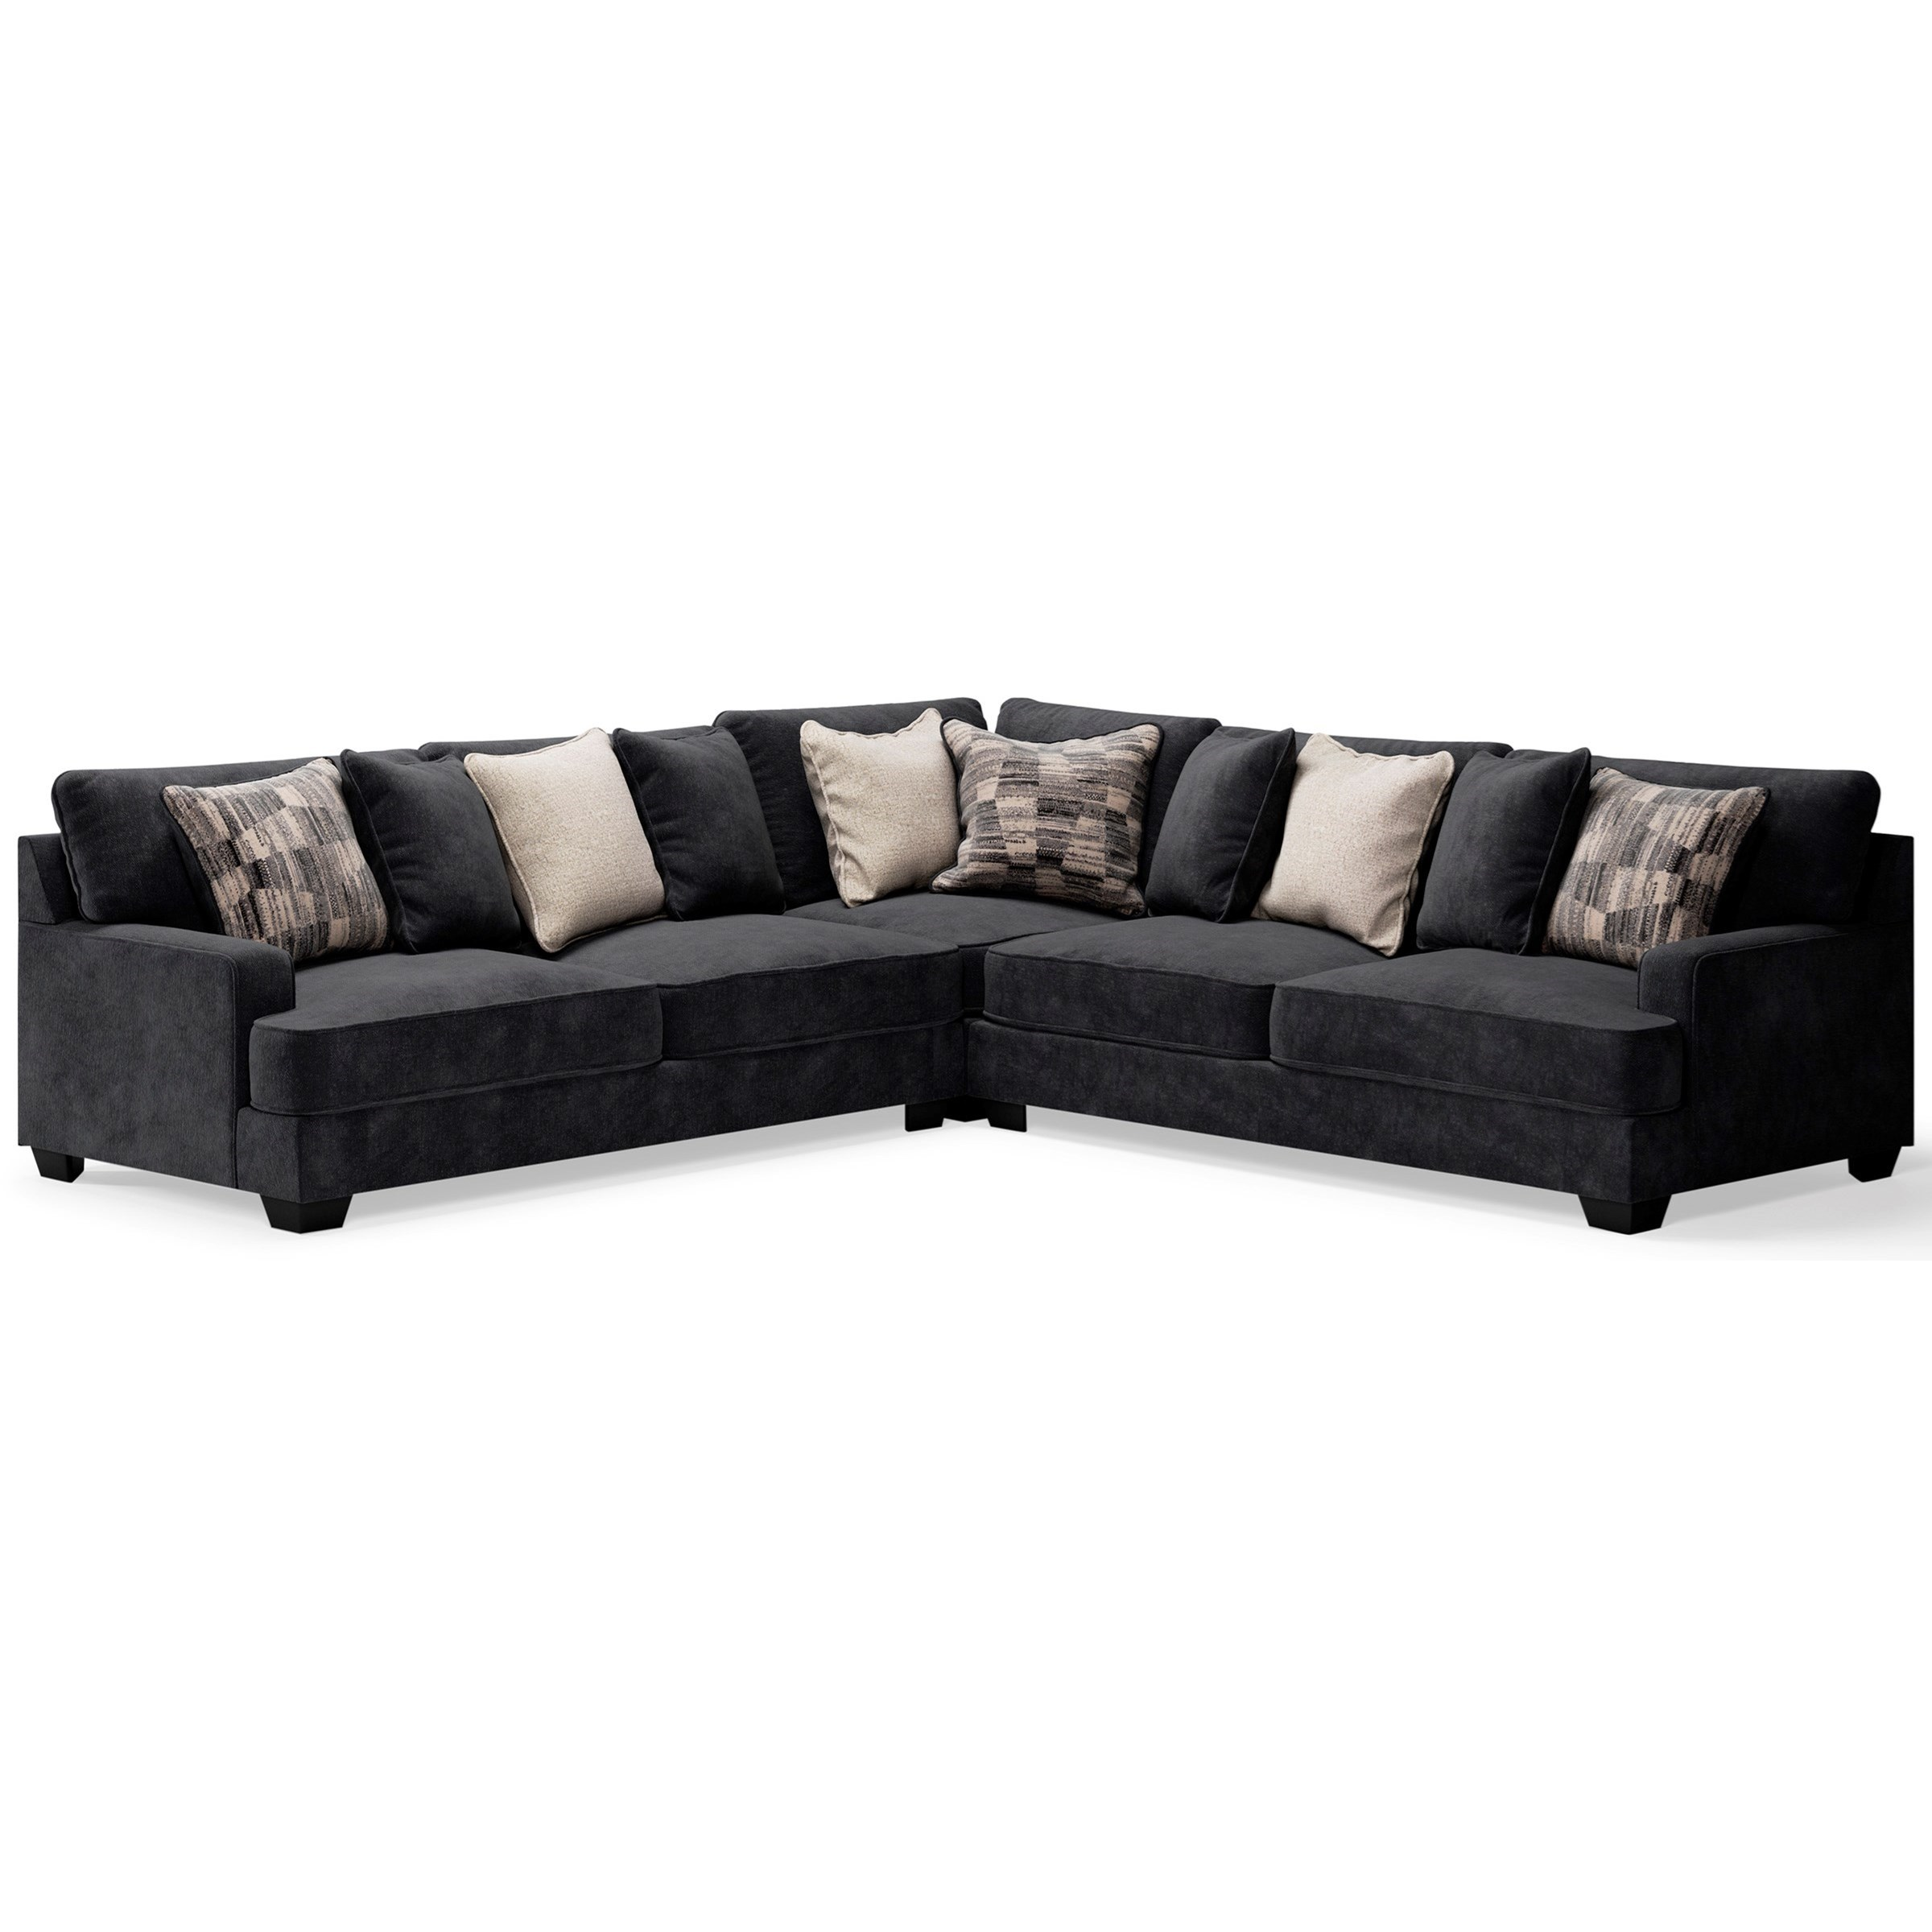 Lavernett 3-Piece Sectional by Signature at Walker's Furniture